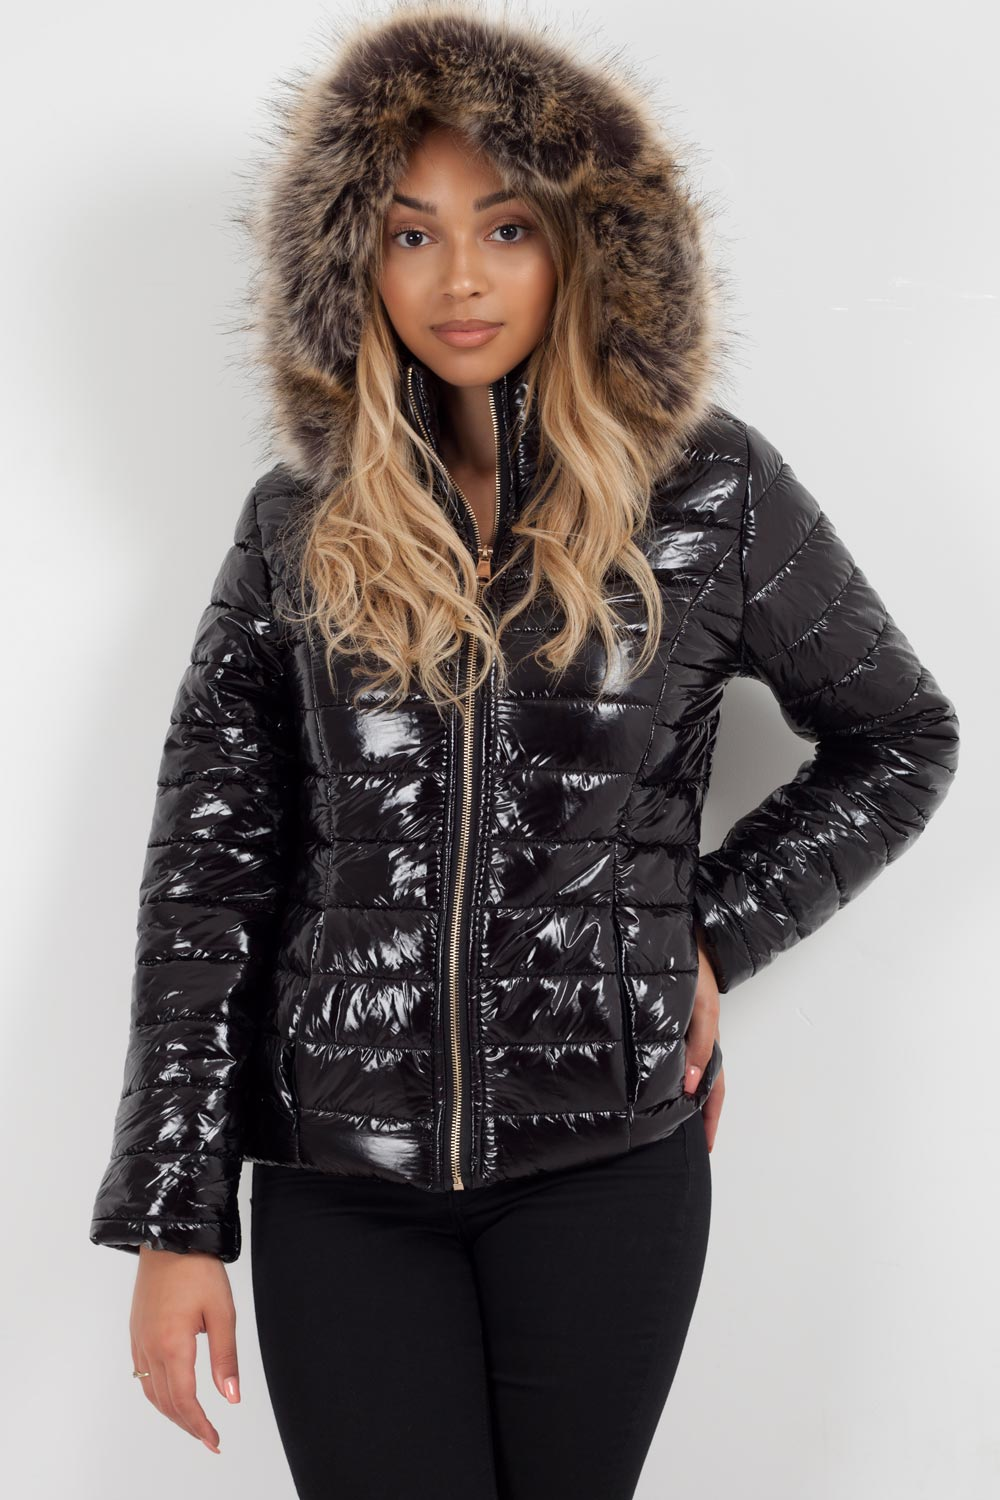 shiny puffer jacket with fur hood styledup fashion